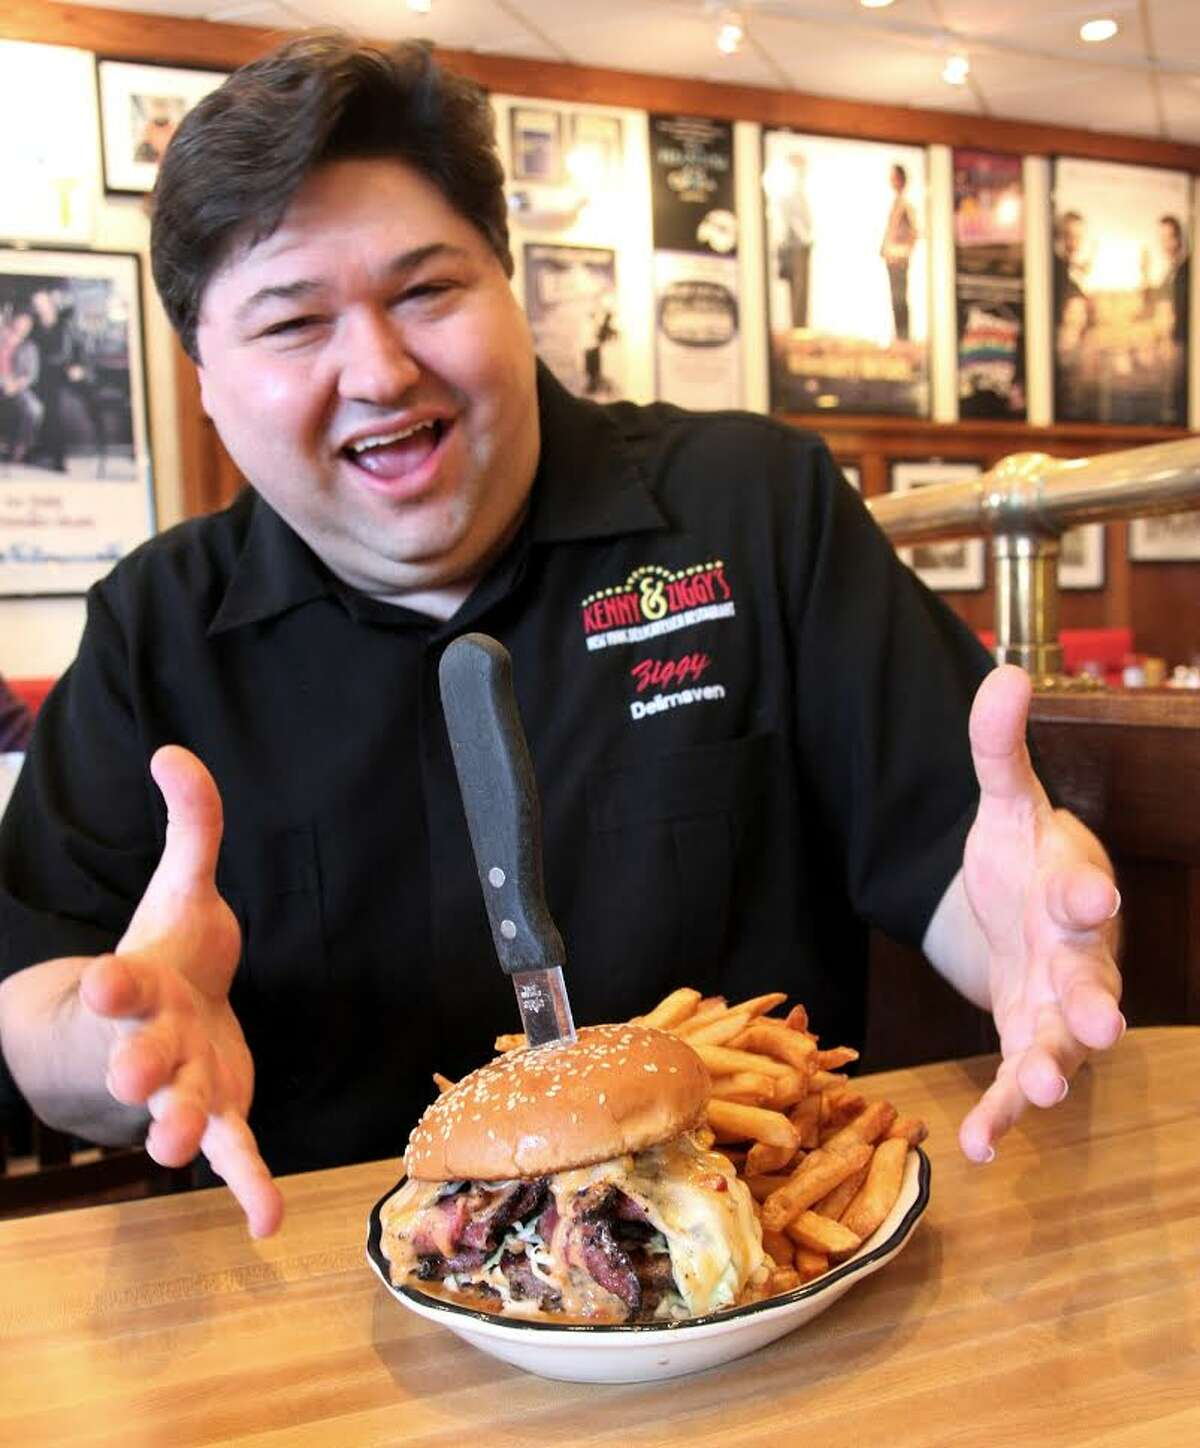 Third generation deliman Ziggy Gruber is opening another location in Houston near West U.